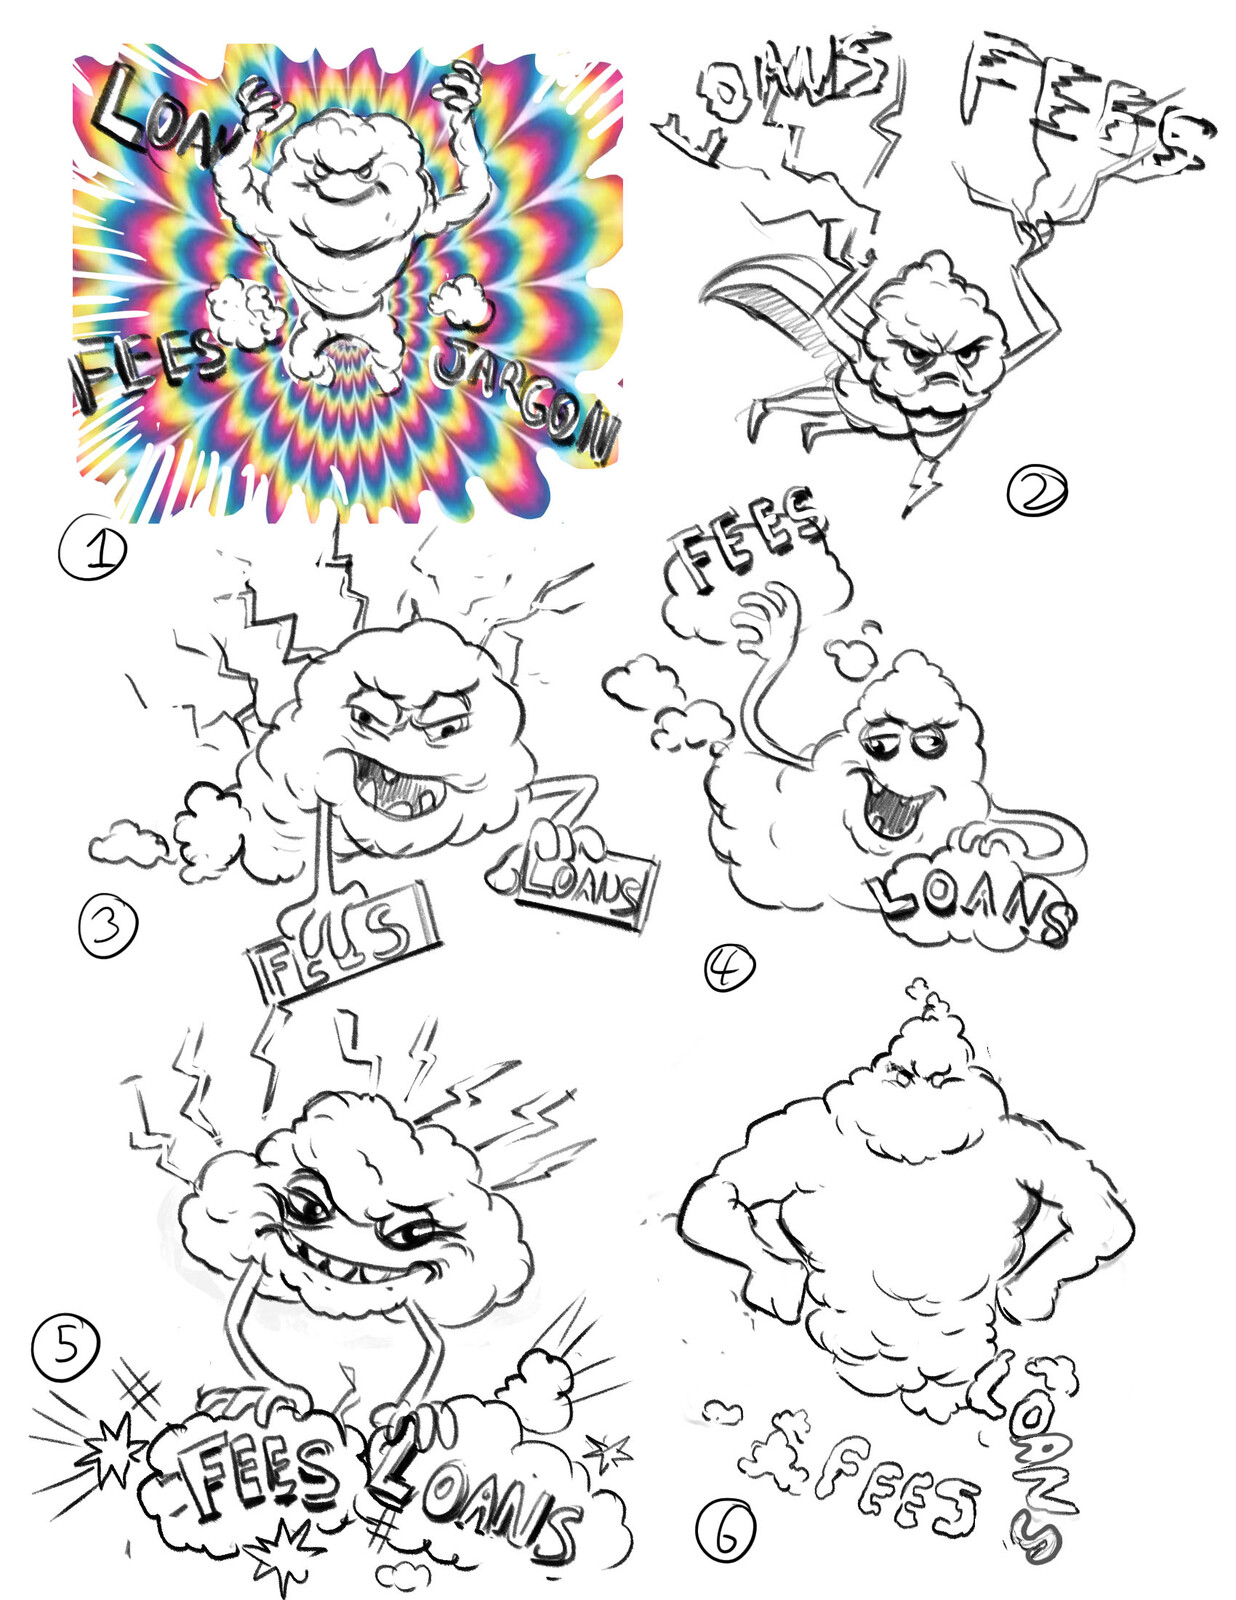 Early Brainstorm sketches 01